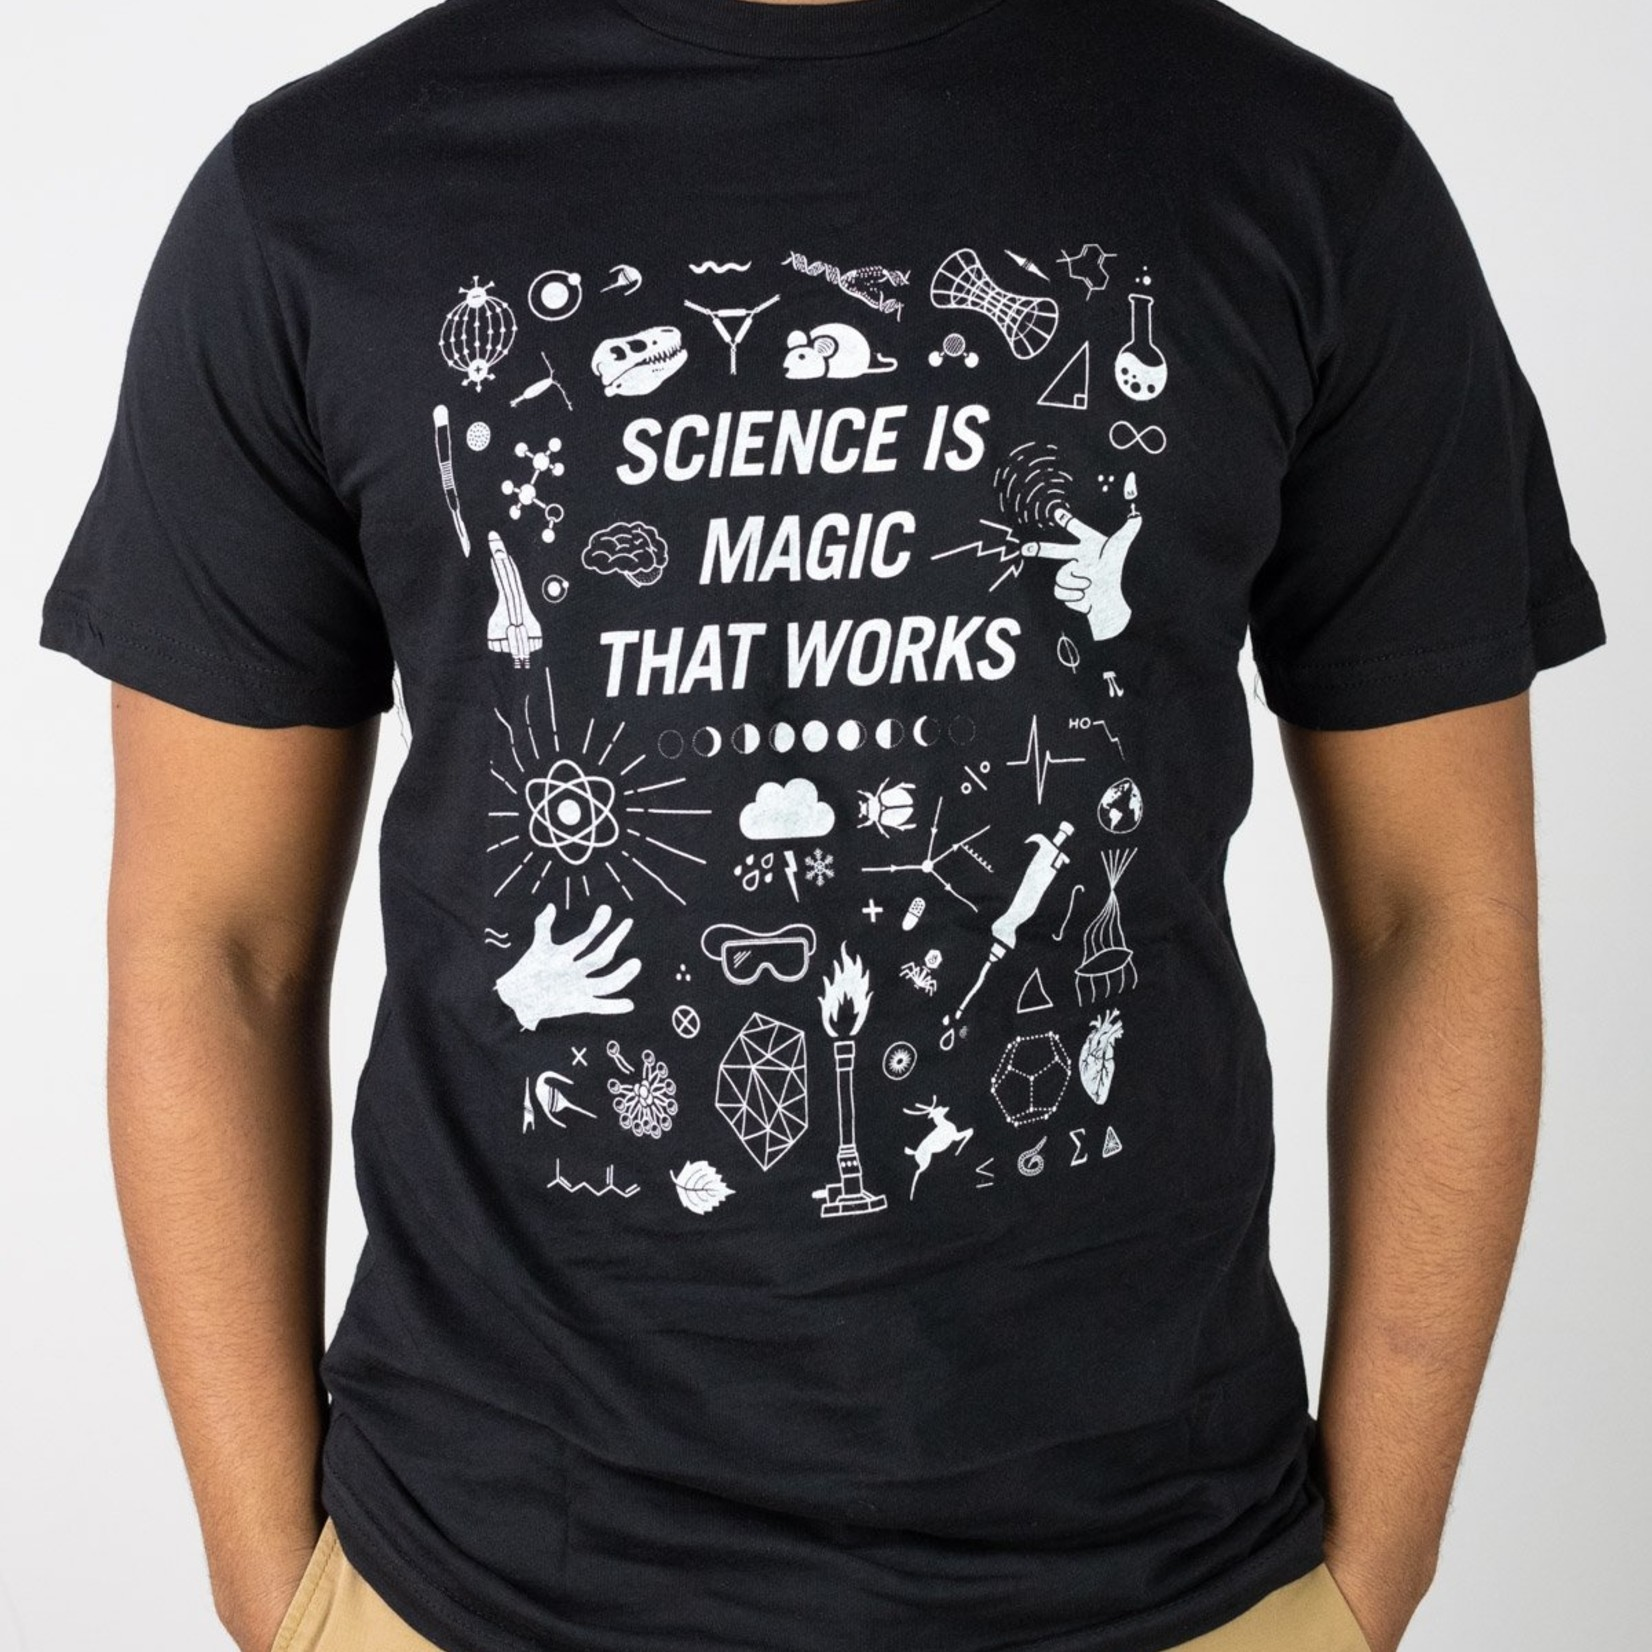 Cognitive Surplus Science is Magic That Works Unisex Tee